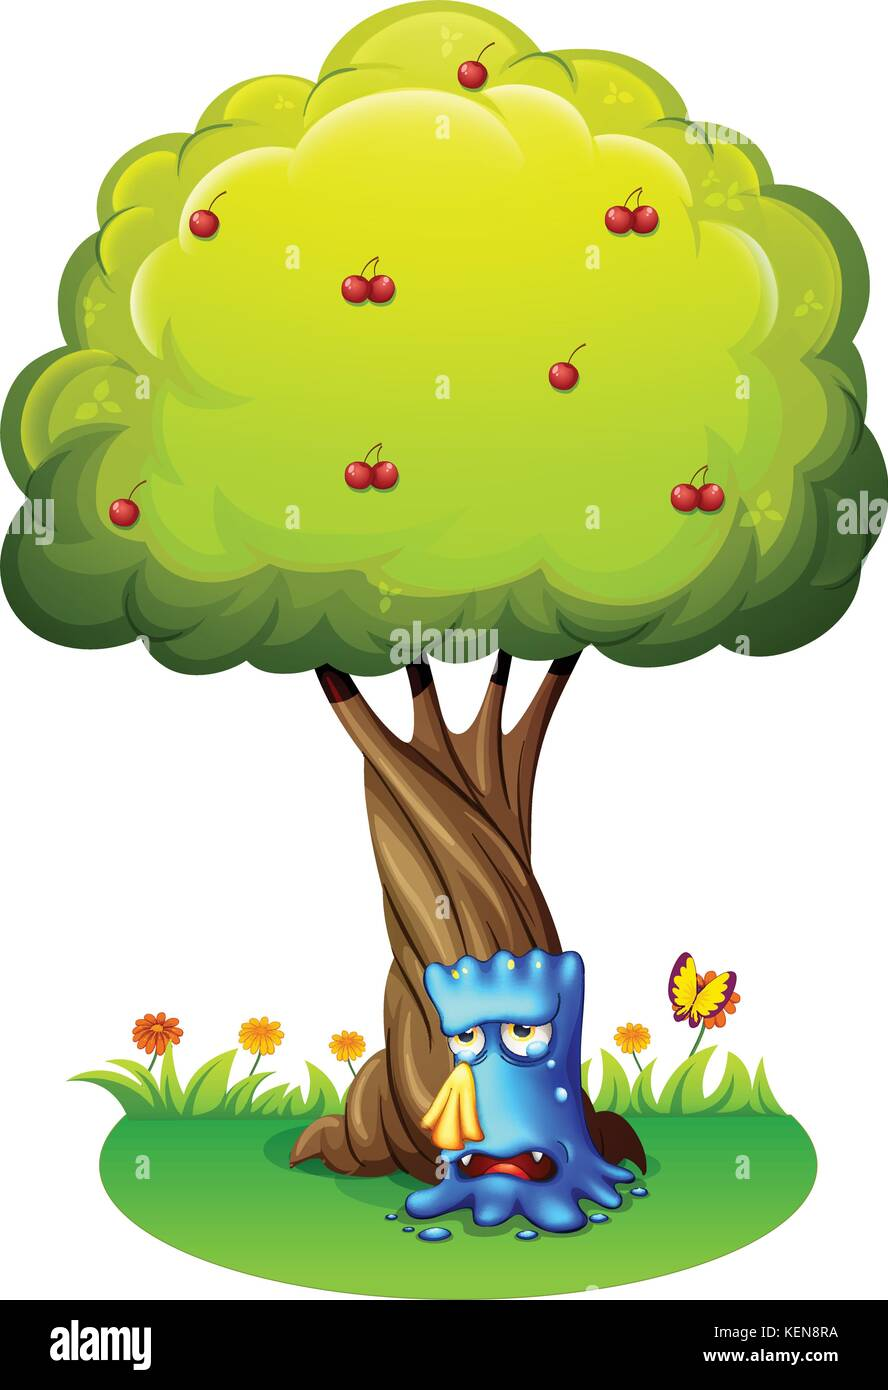 Illustration of a blue monster sobbing under the tree on a white background - Stock Vector